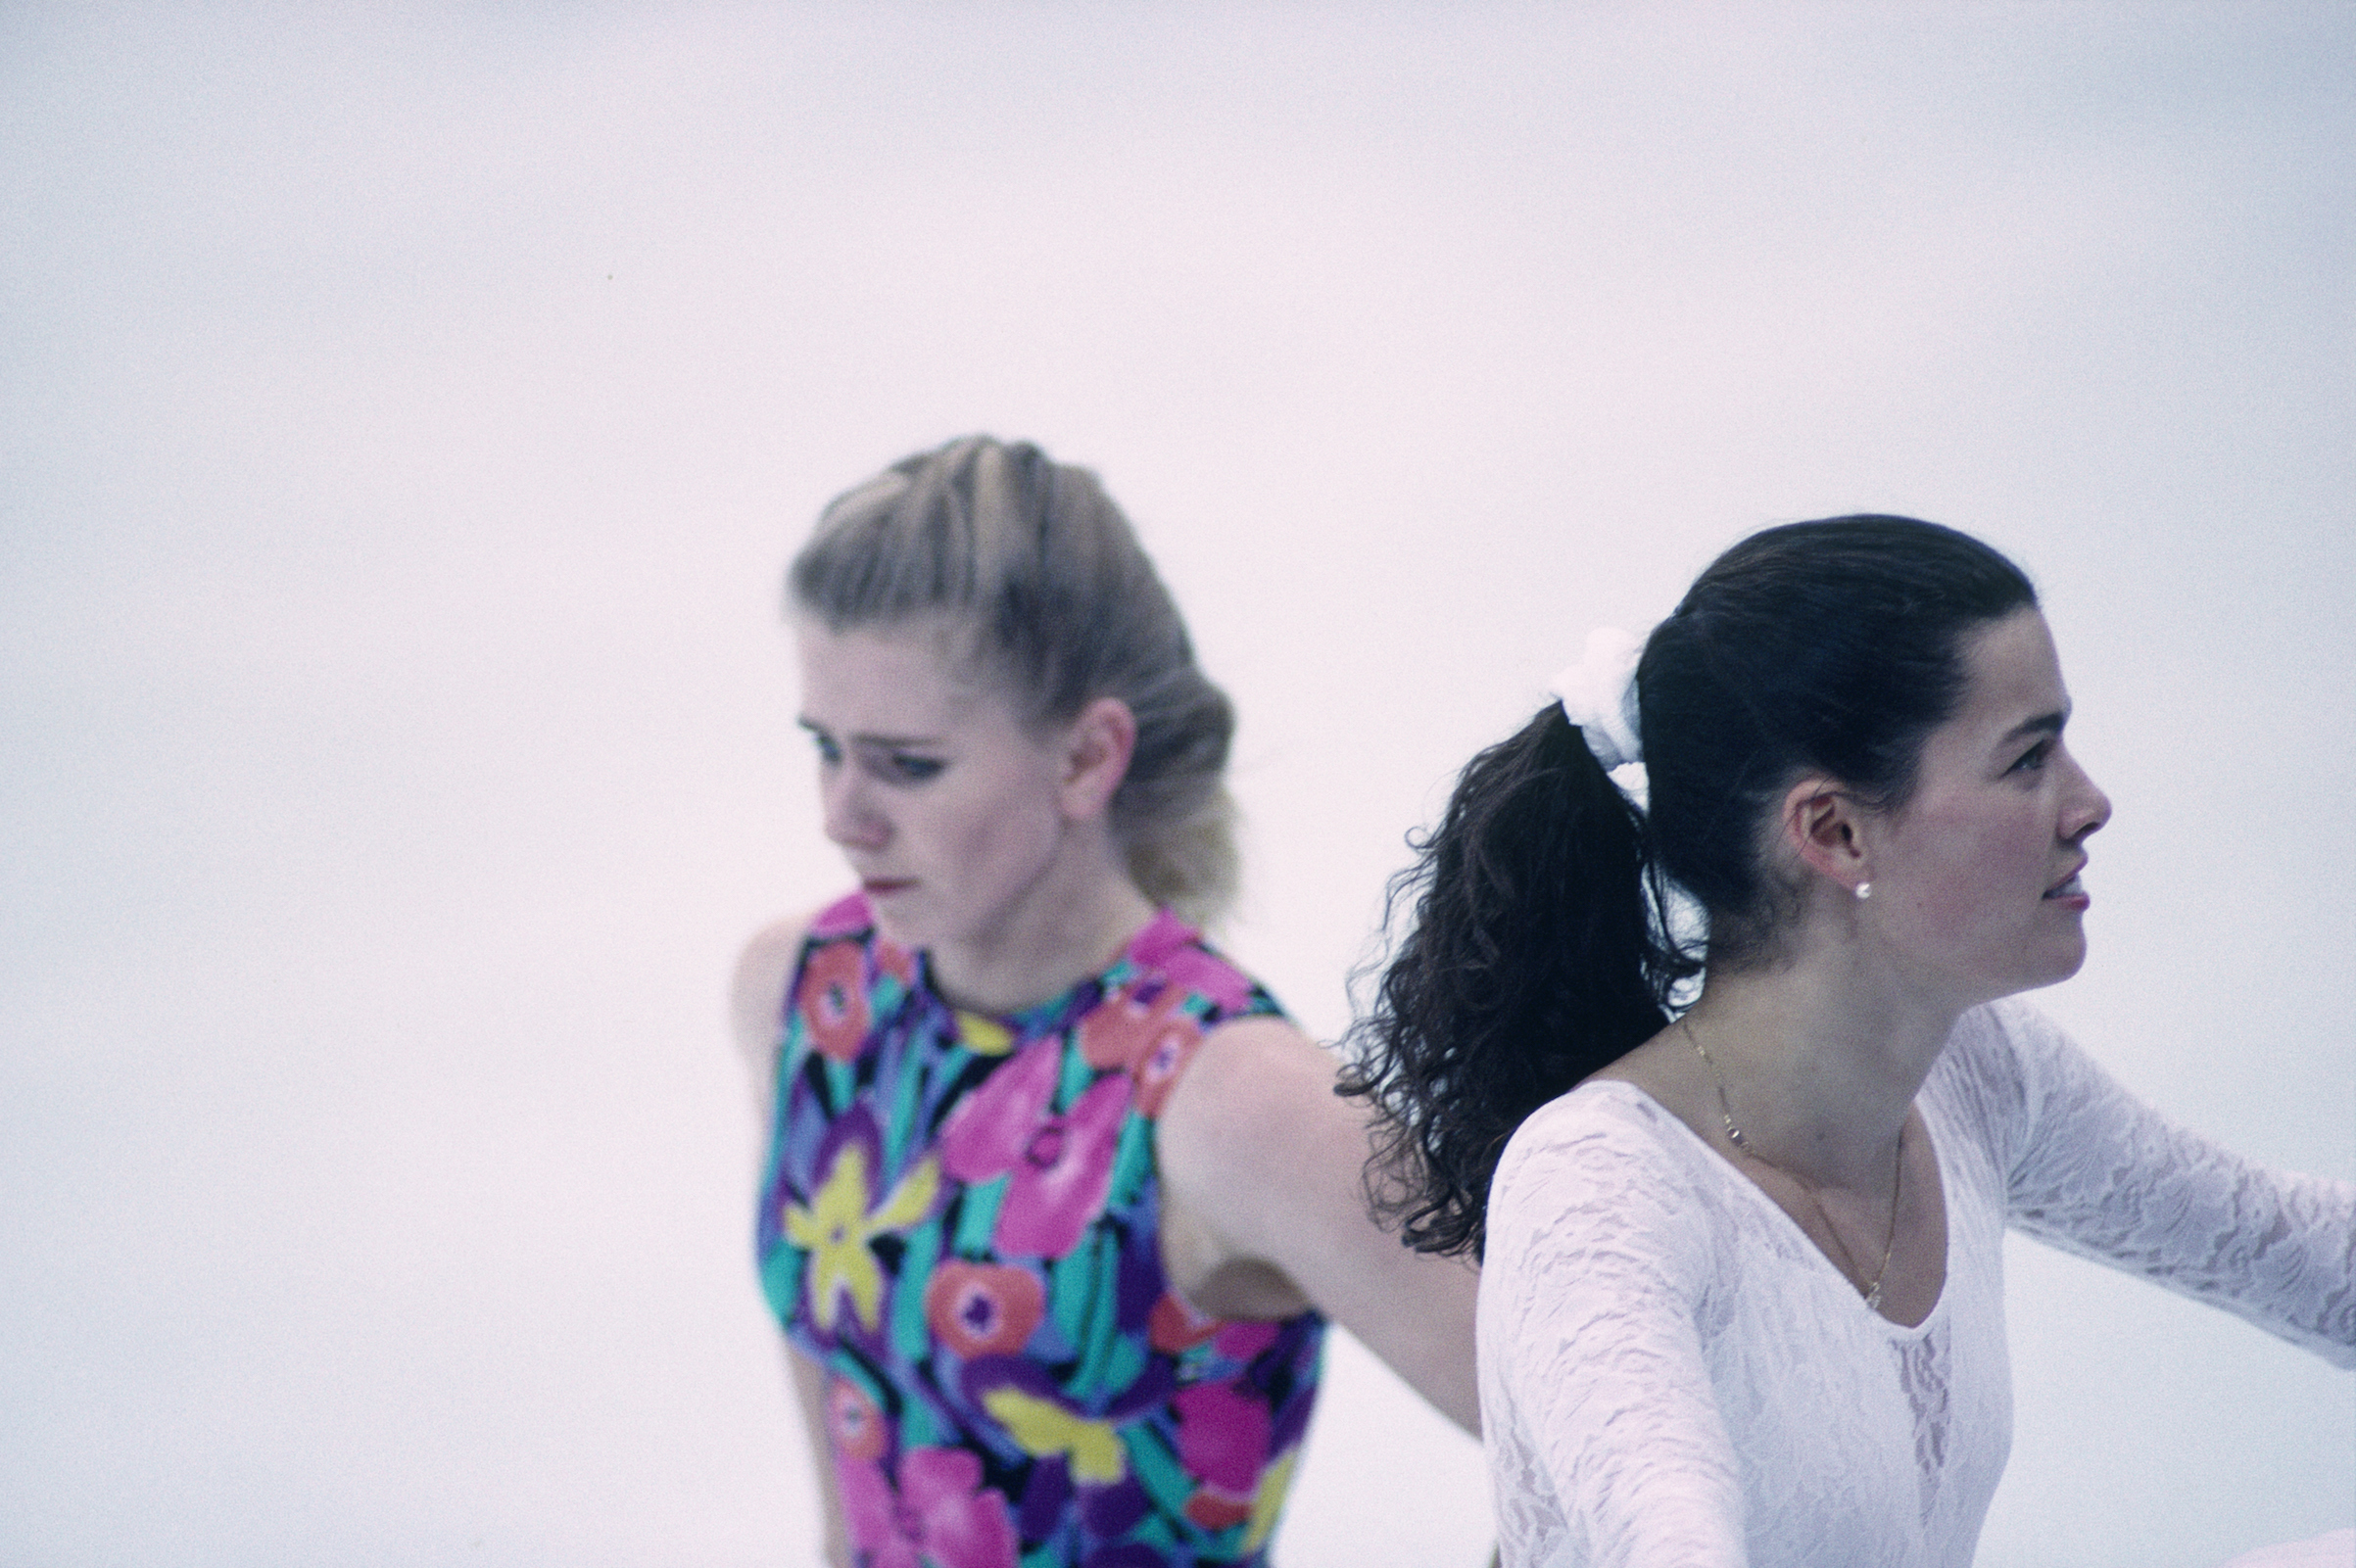 Tonya Harding (L) and Nancy Kerrigan, both from USA, during a training session of the 1994 Winter Olympics.